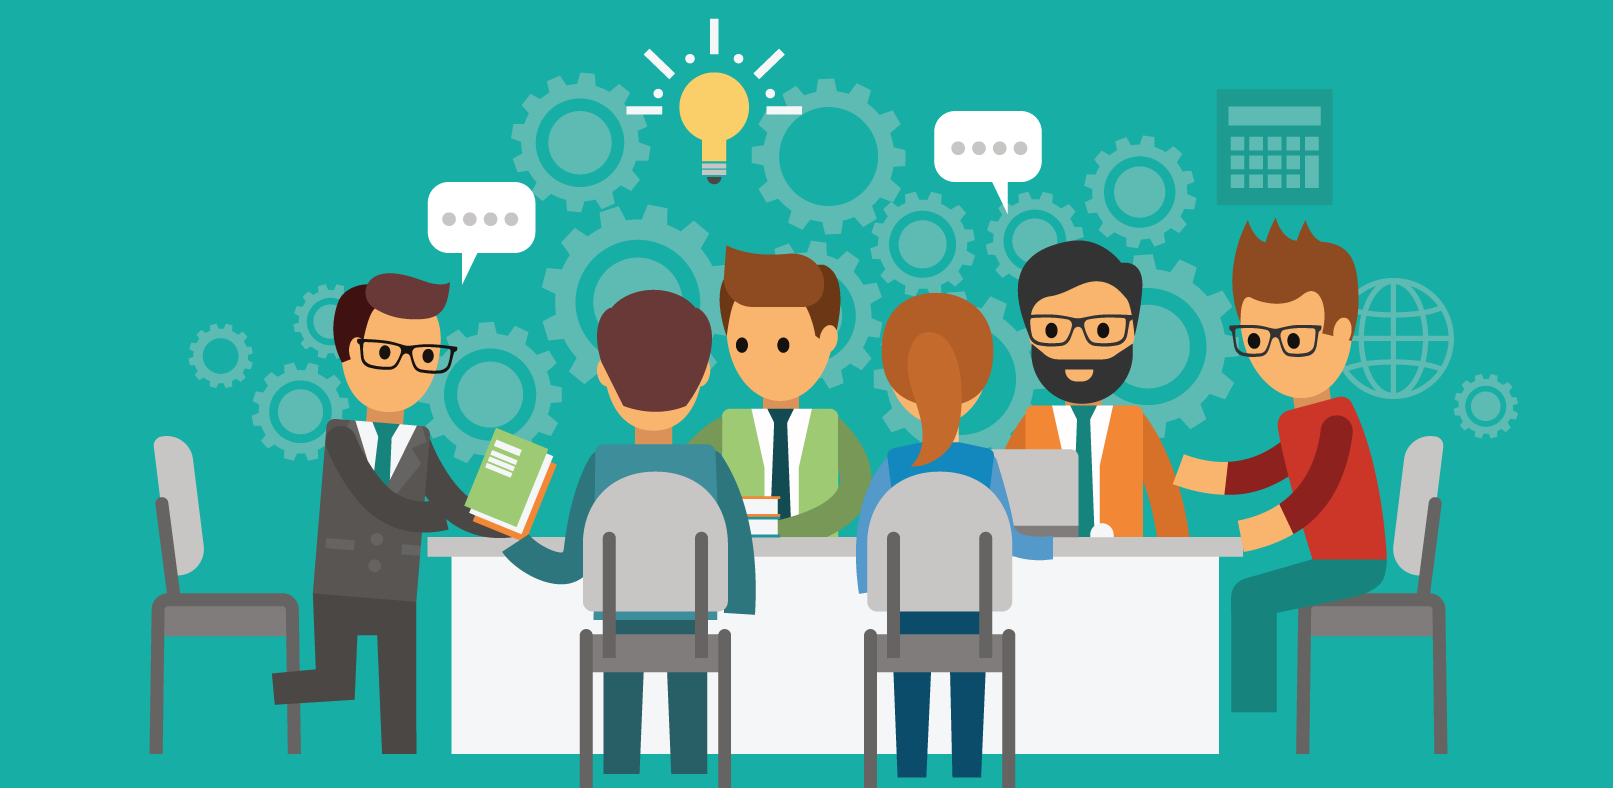 Evaluating Company Culture Why It Matters When Evaluating a Job Offer